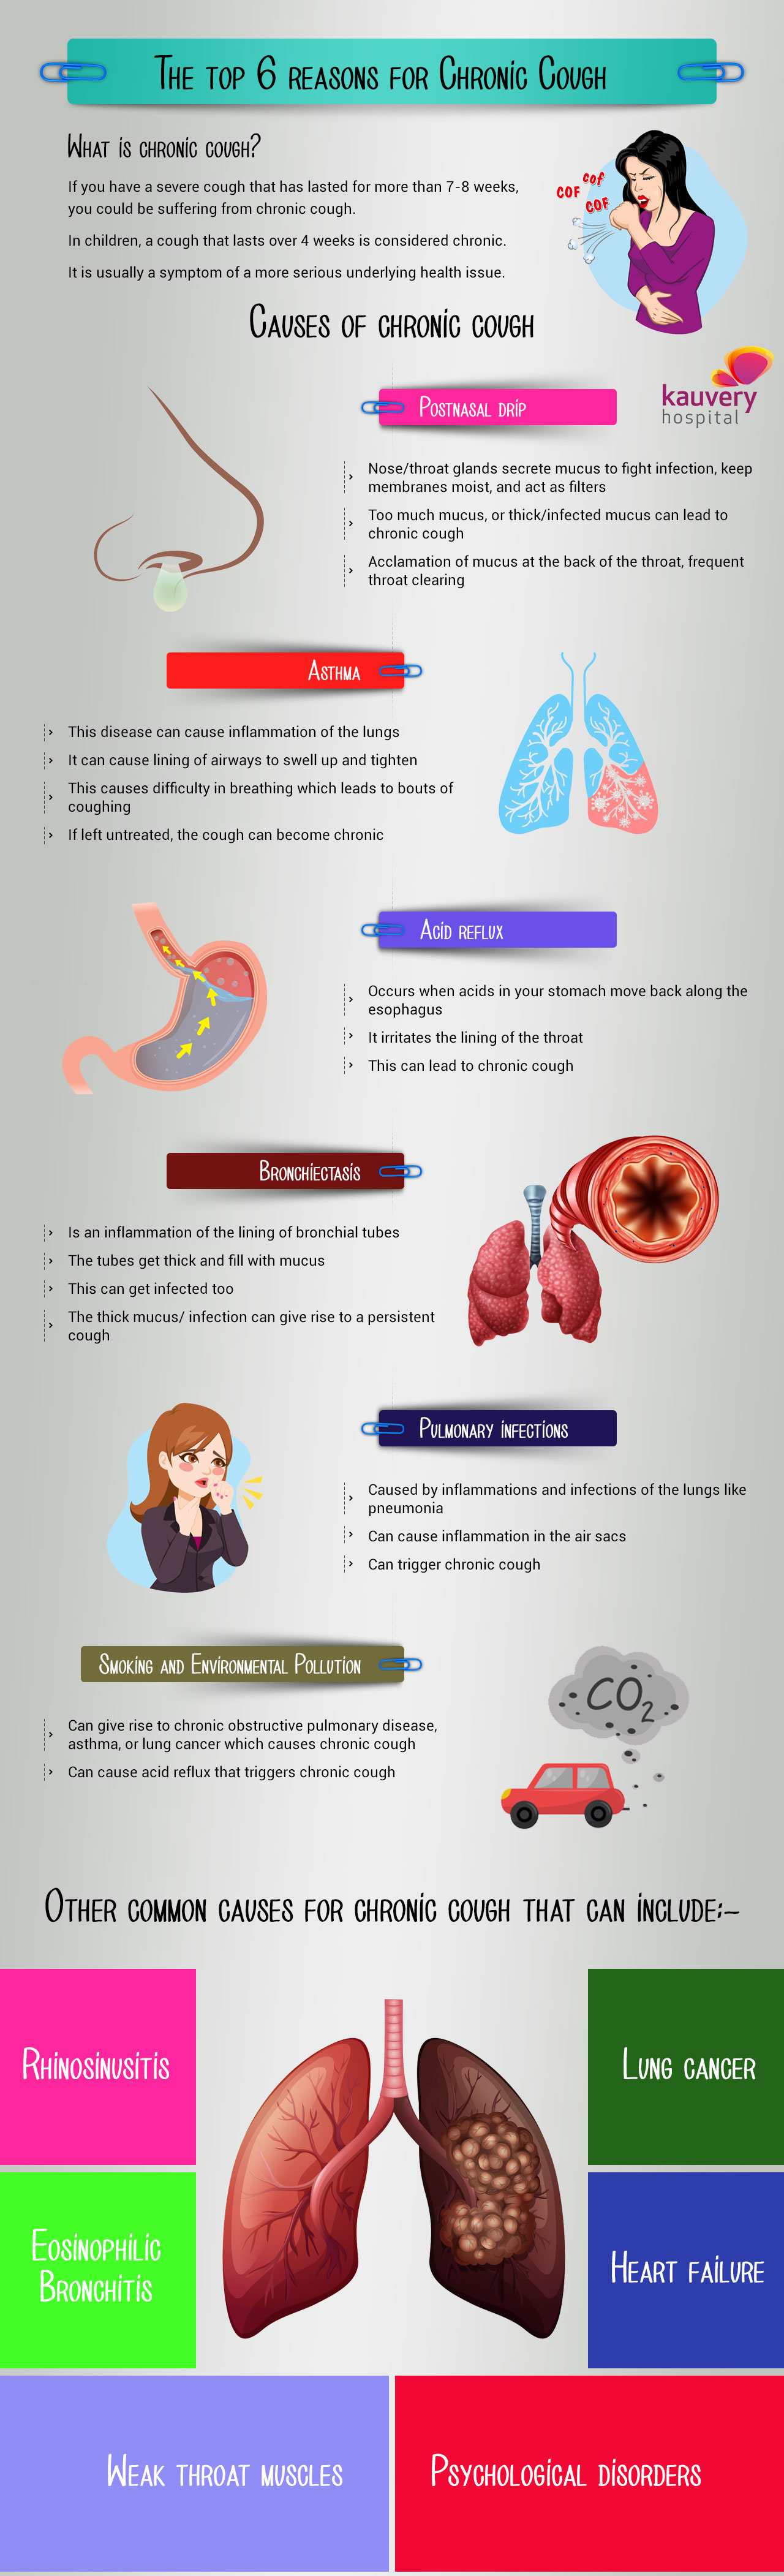 what are the causes of chronic cough